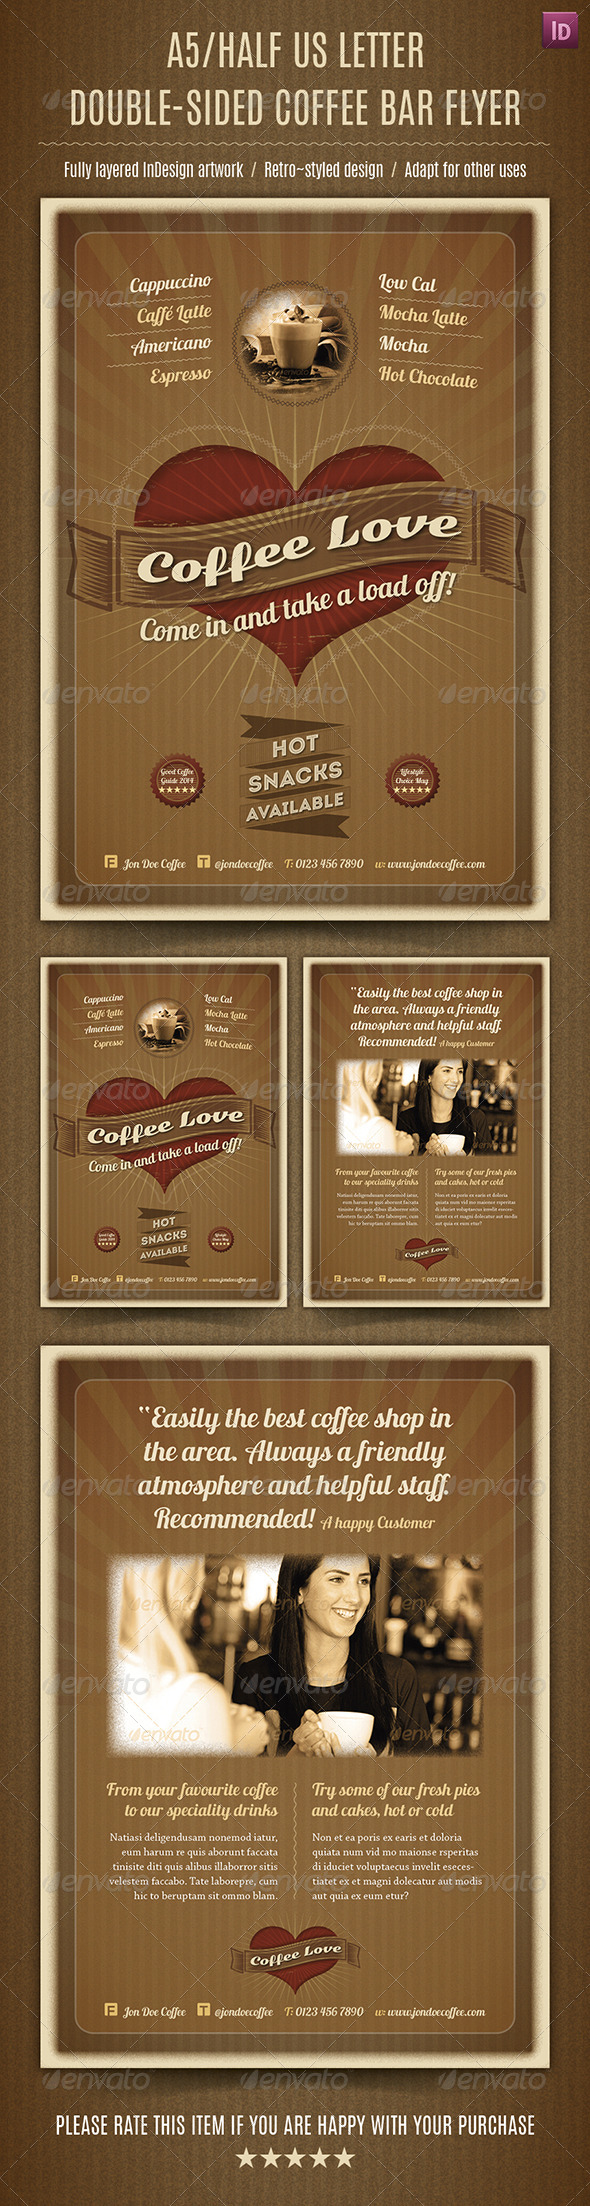 GraphicRiver A5 Half Letter Double-Sided Coffee Bar Flyer 7856784